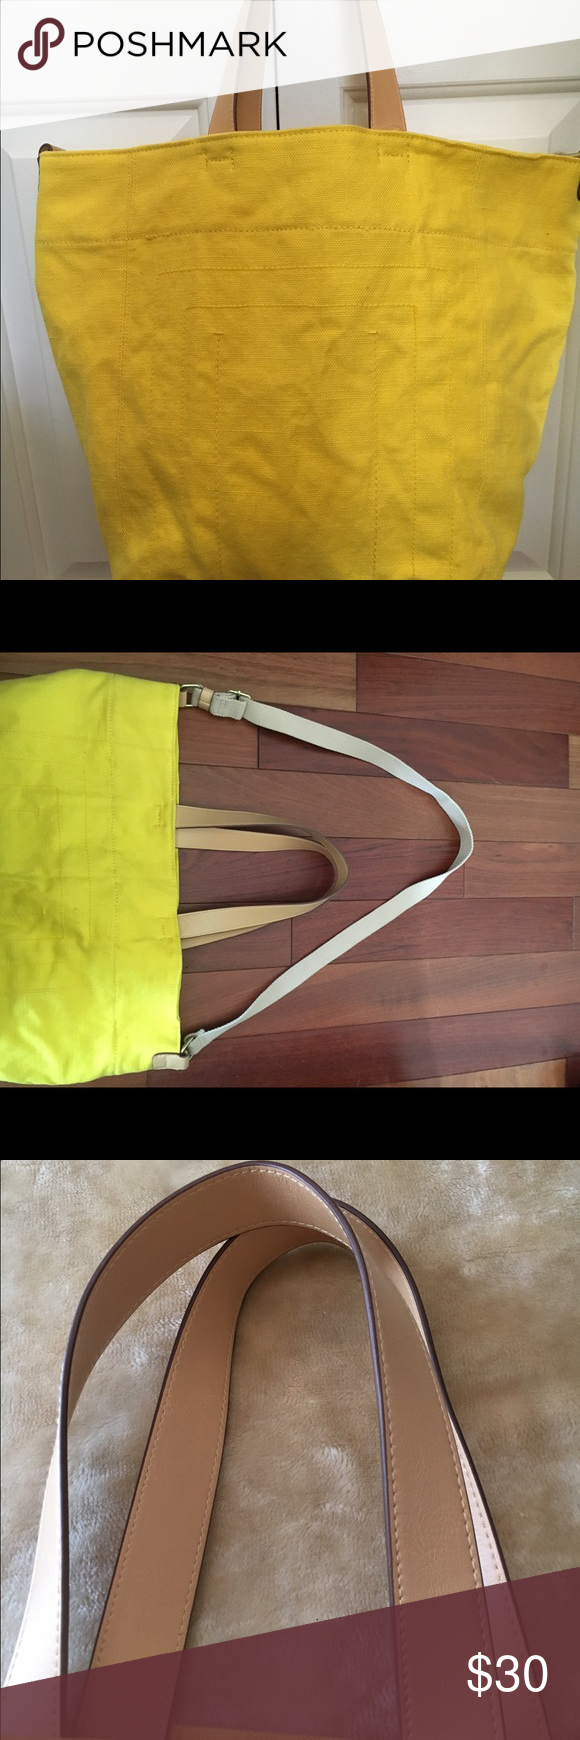 Gap beach bag New with tag bright yellow canvas with leather straps with extra strap inside to wear as a shoulder bag it's adjustable zippered pocket inside lined interior perfect condition just a few wrinkles from being in closet . Gap Bags Totes